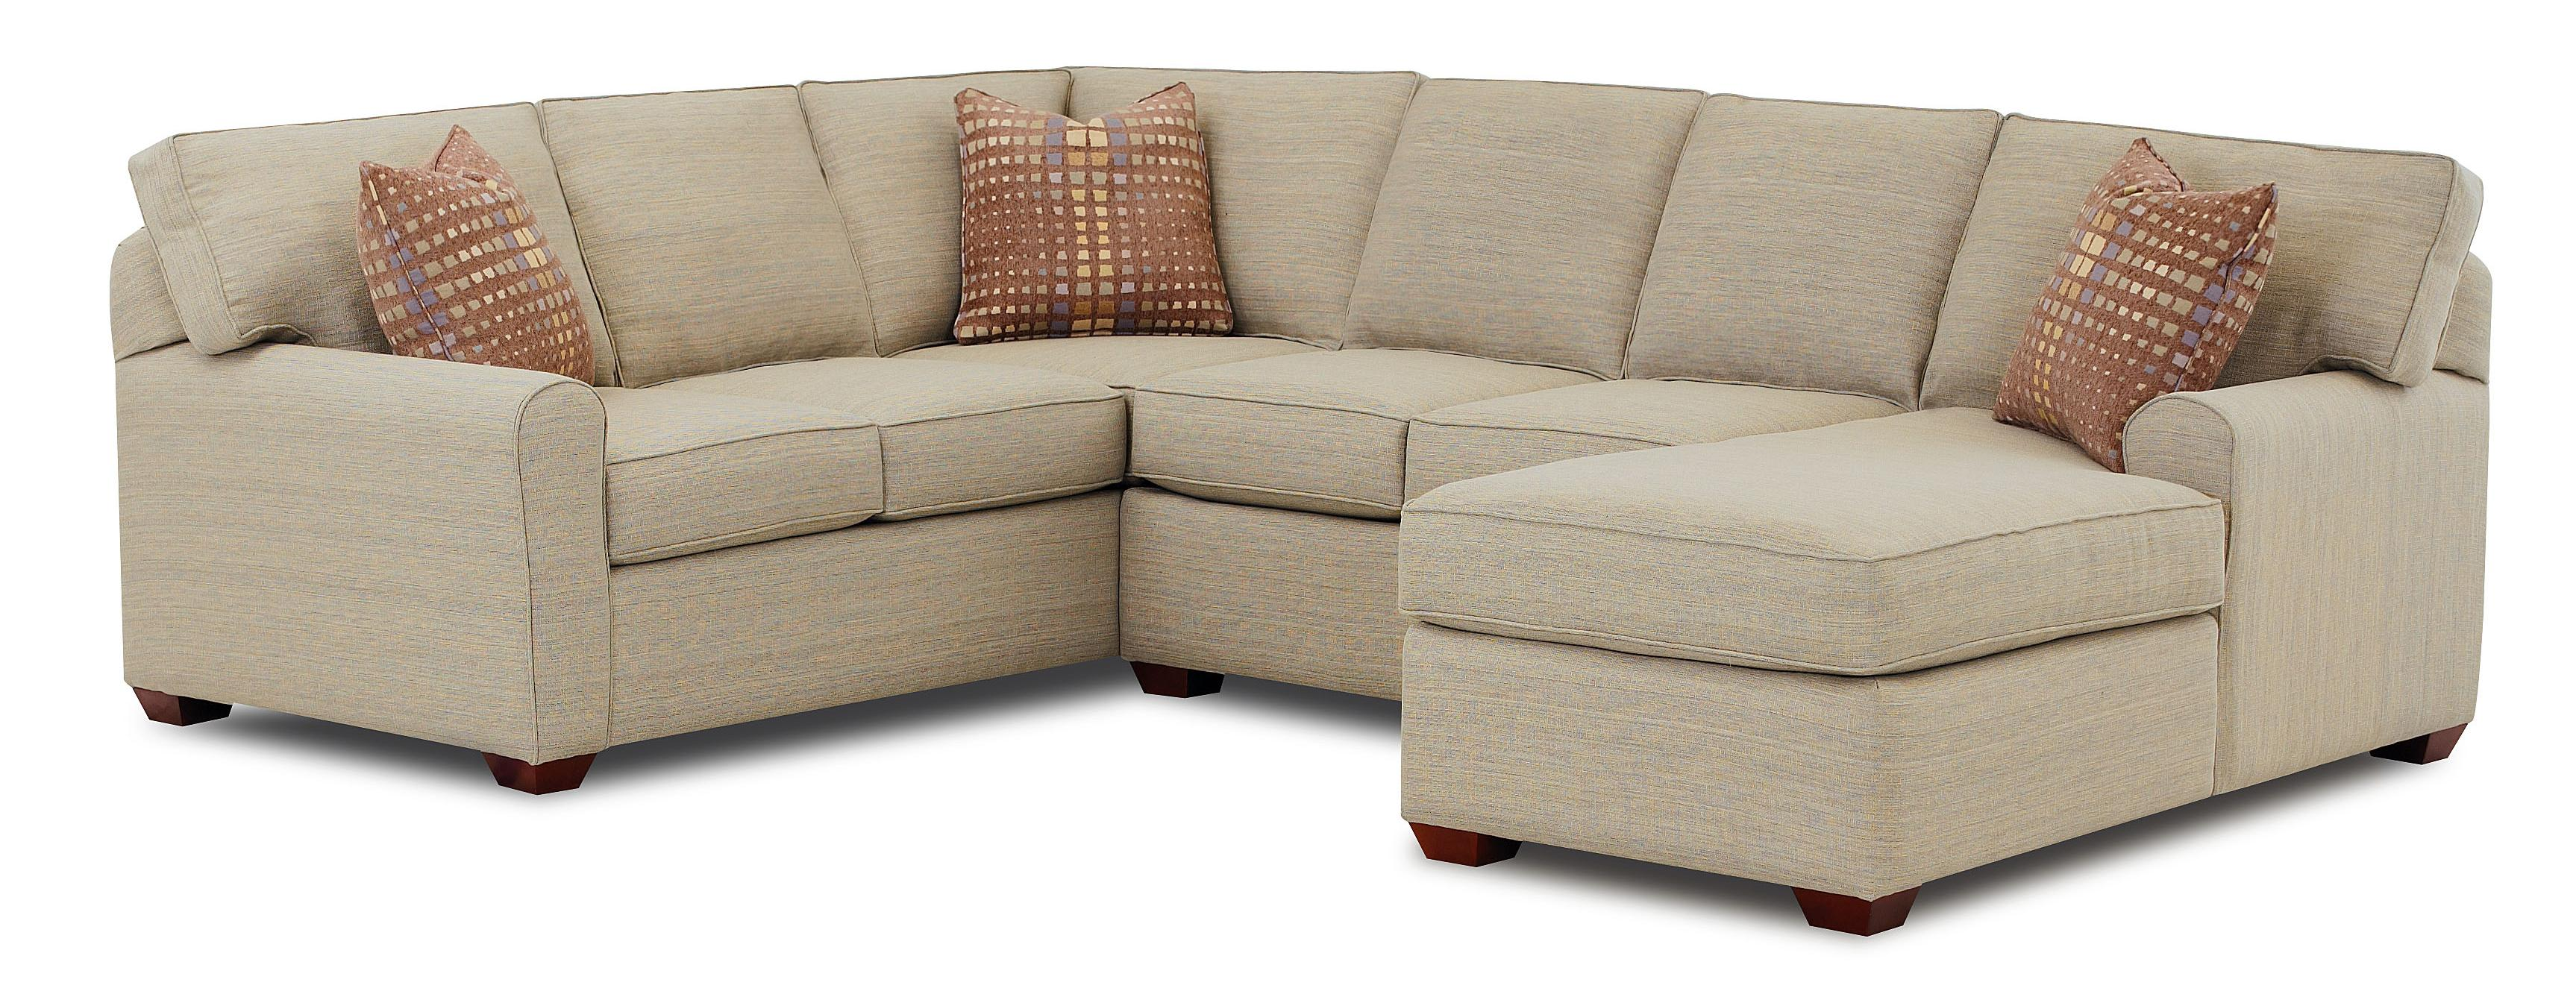 Attrayant Sectional Sofa